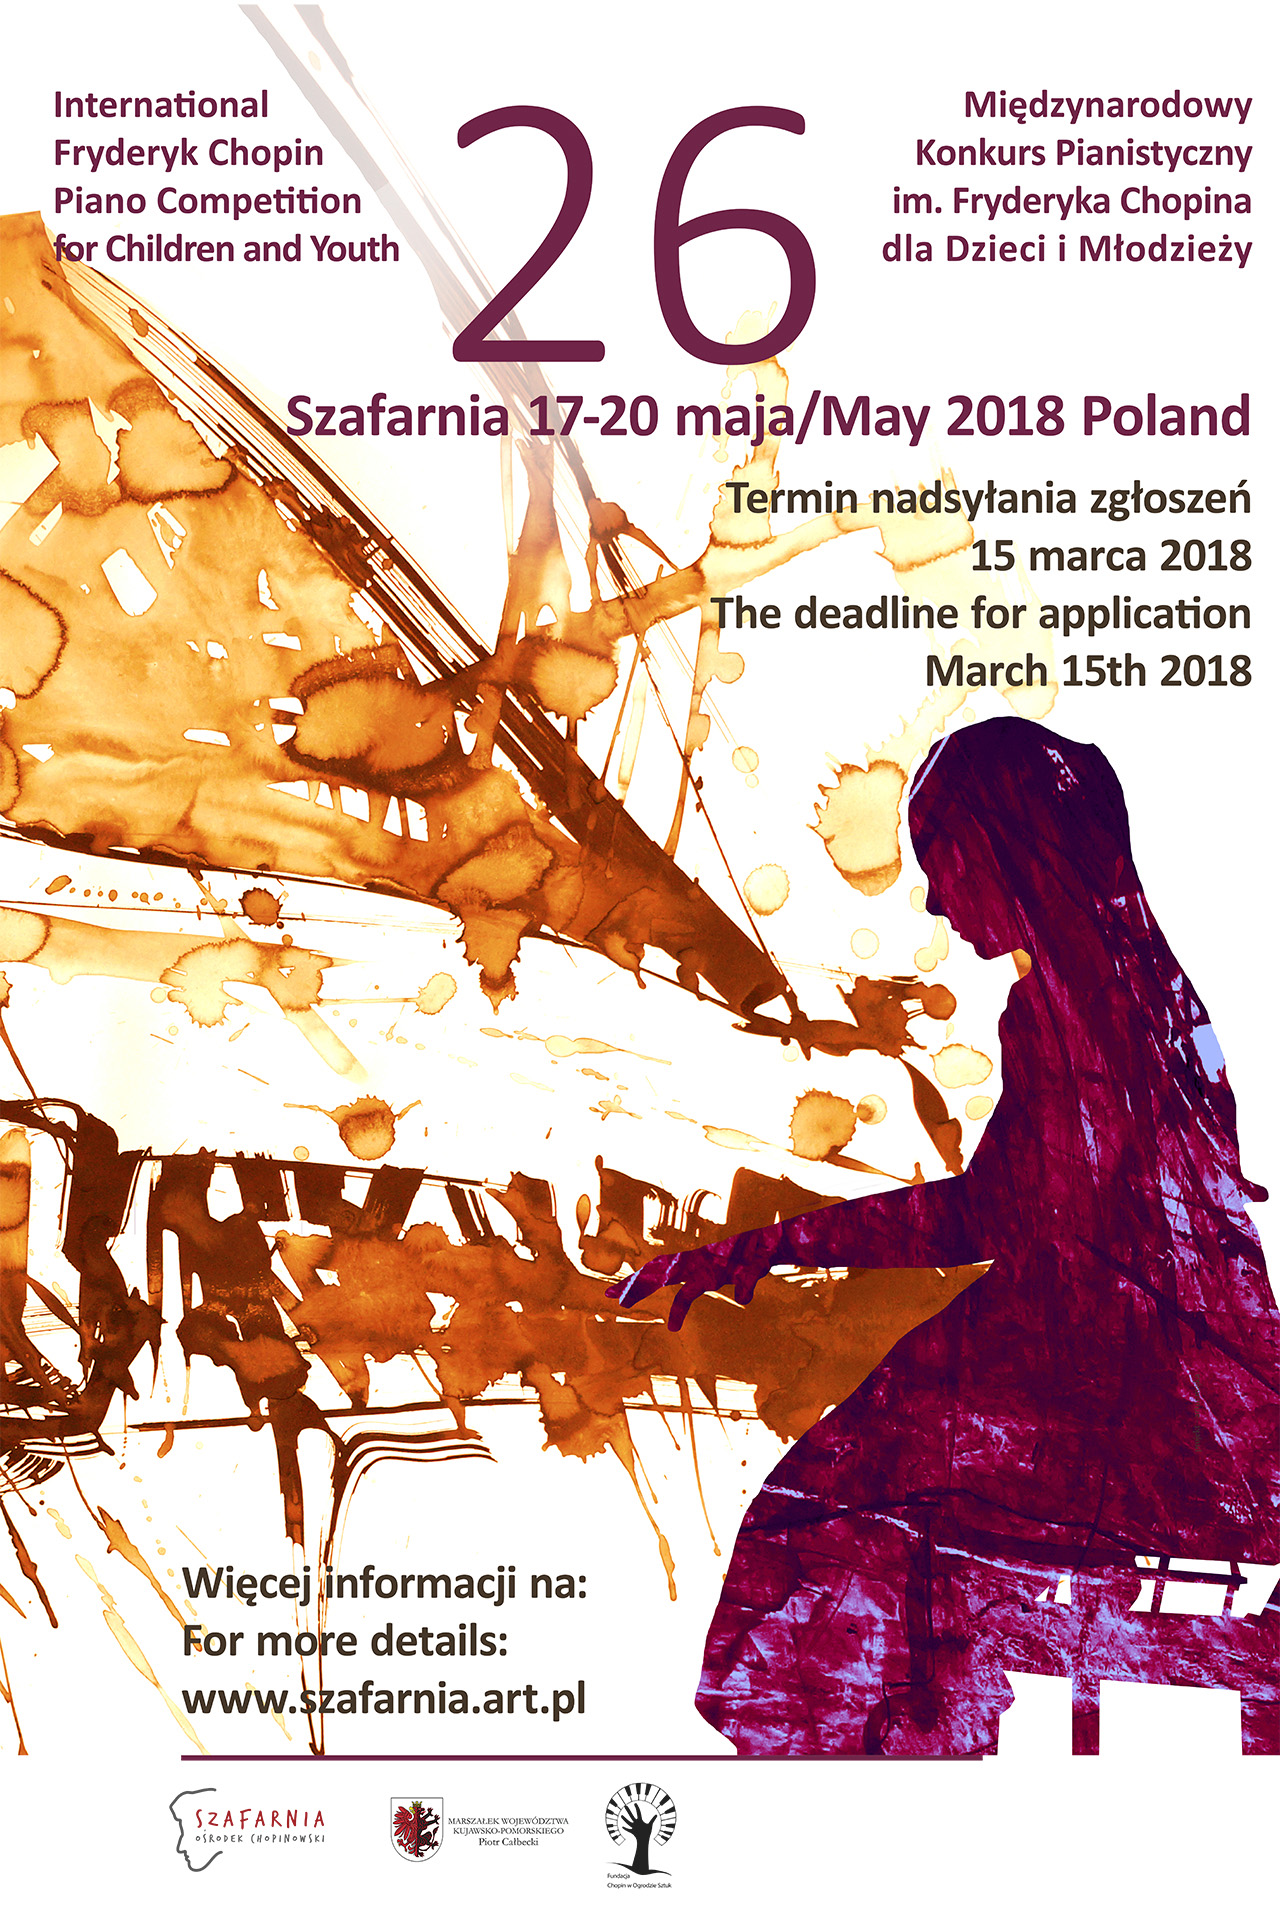 The 26th International Fryderyk Chopin Piano Competition for Children and Youth, Szafarnia 2018